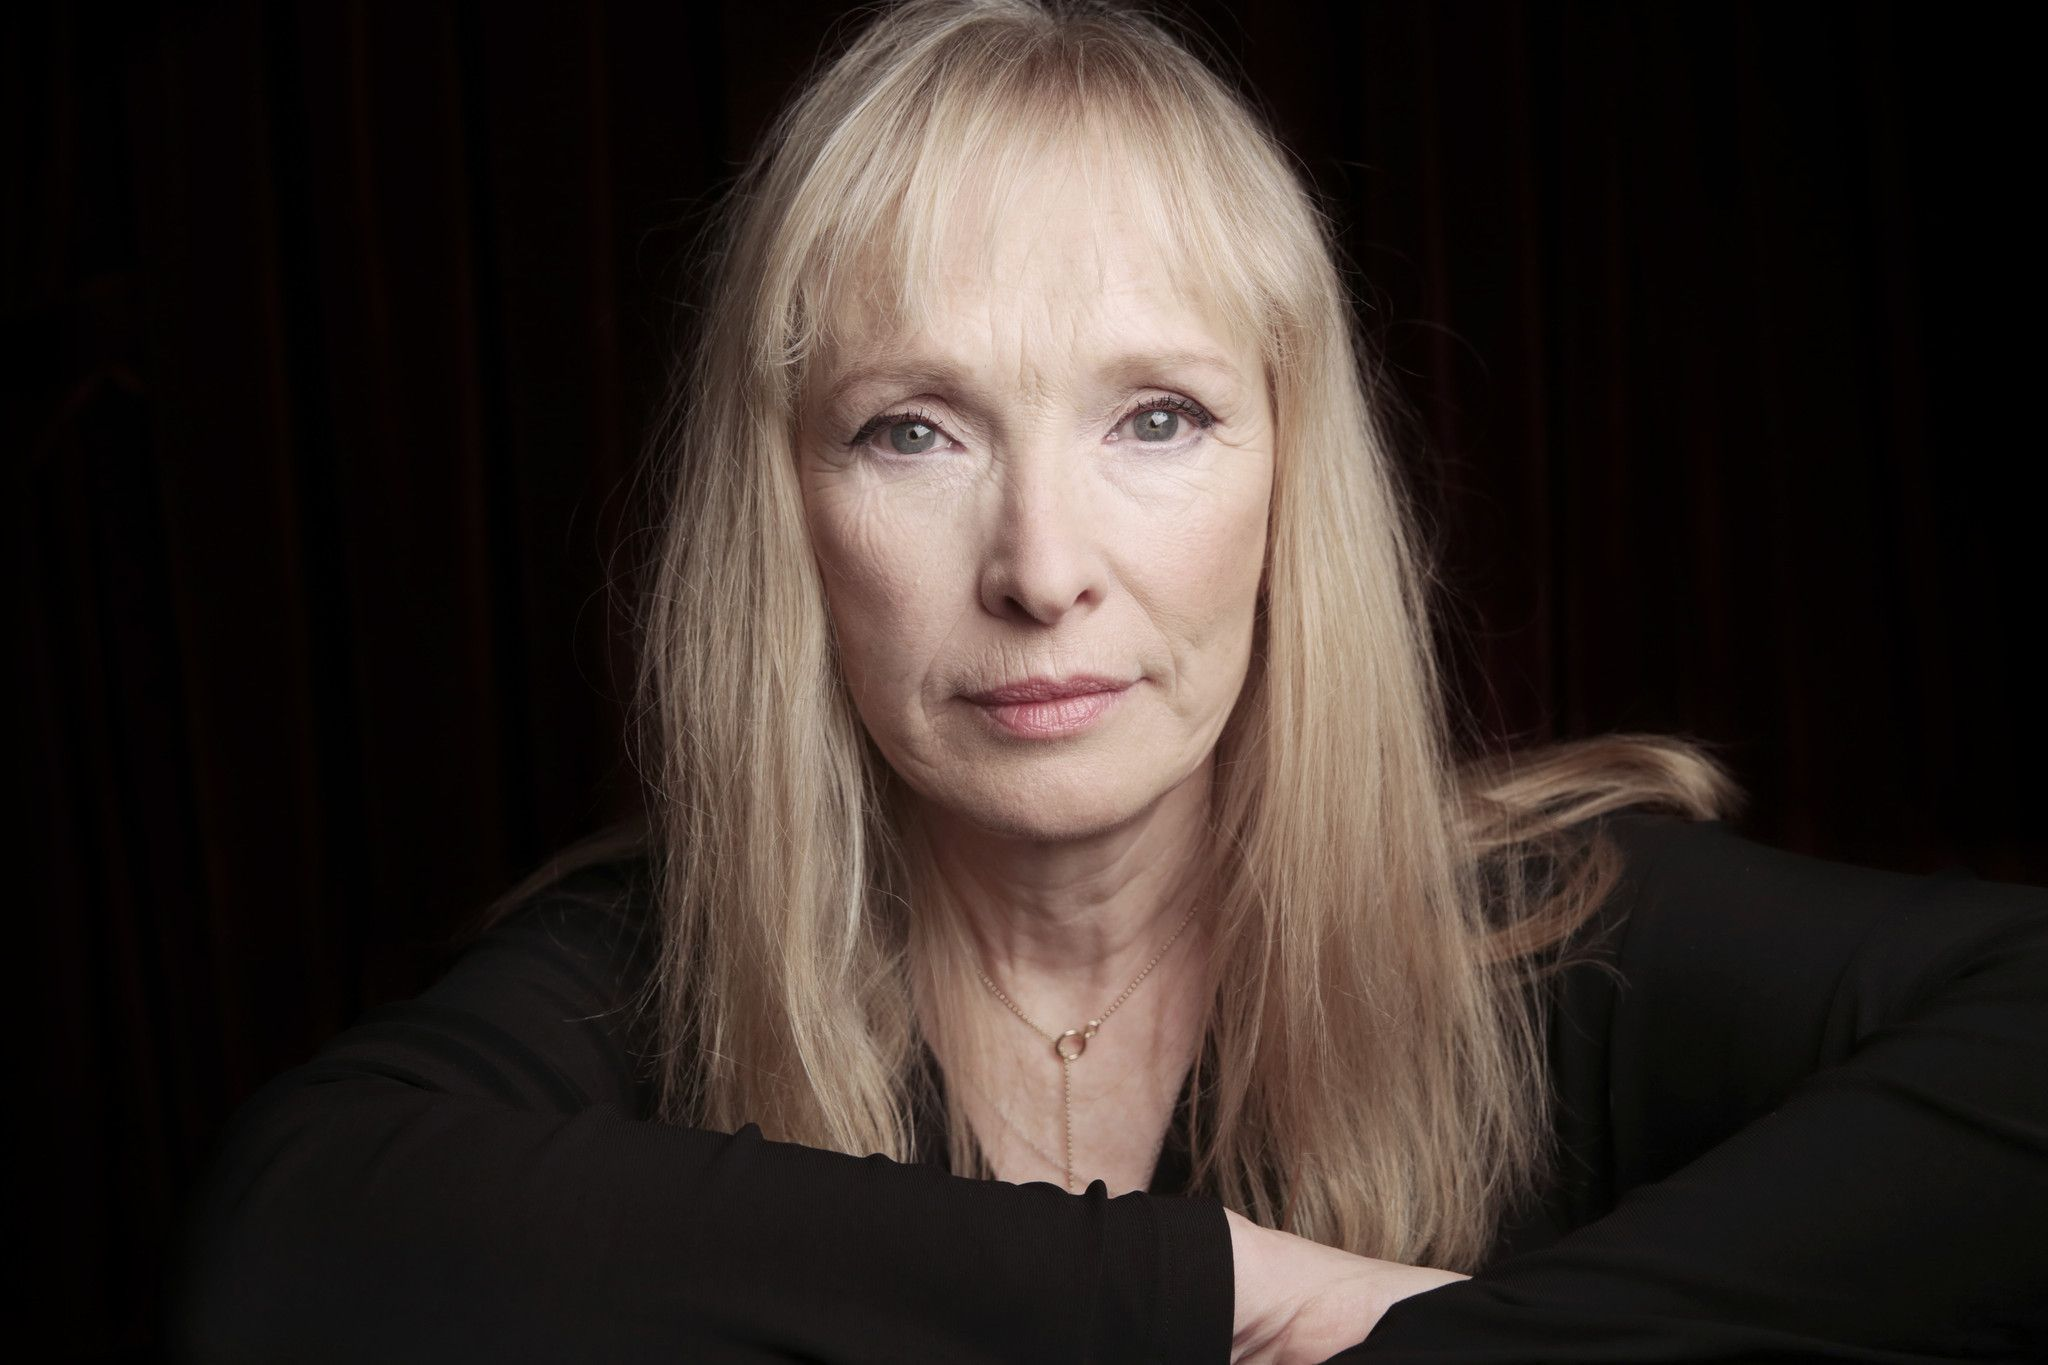 Christina ferrare hairstyle products used - Image Result For Lindsay Duncan